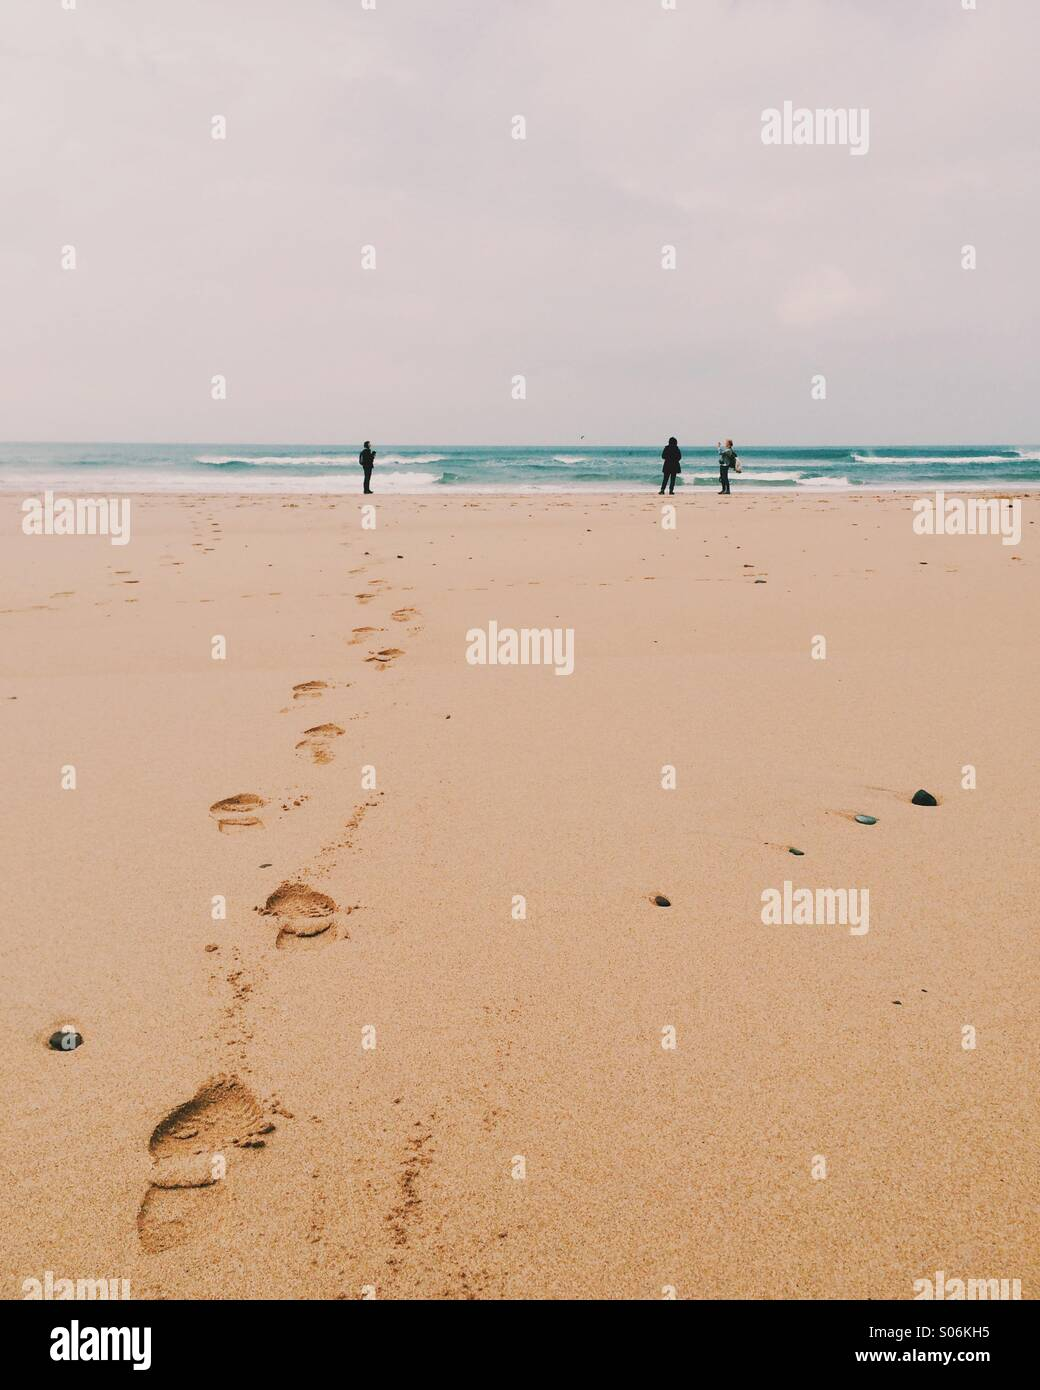 Three people on a beach - Stock Image